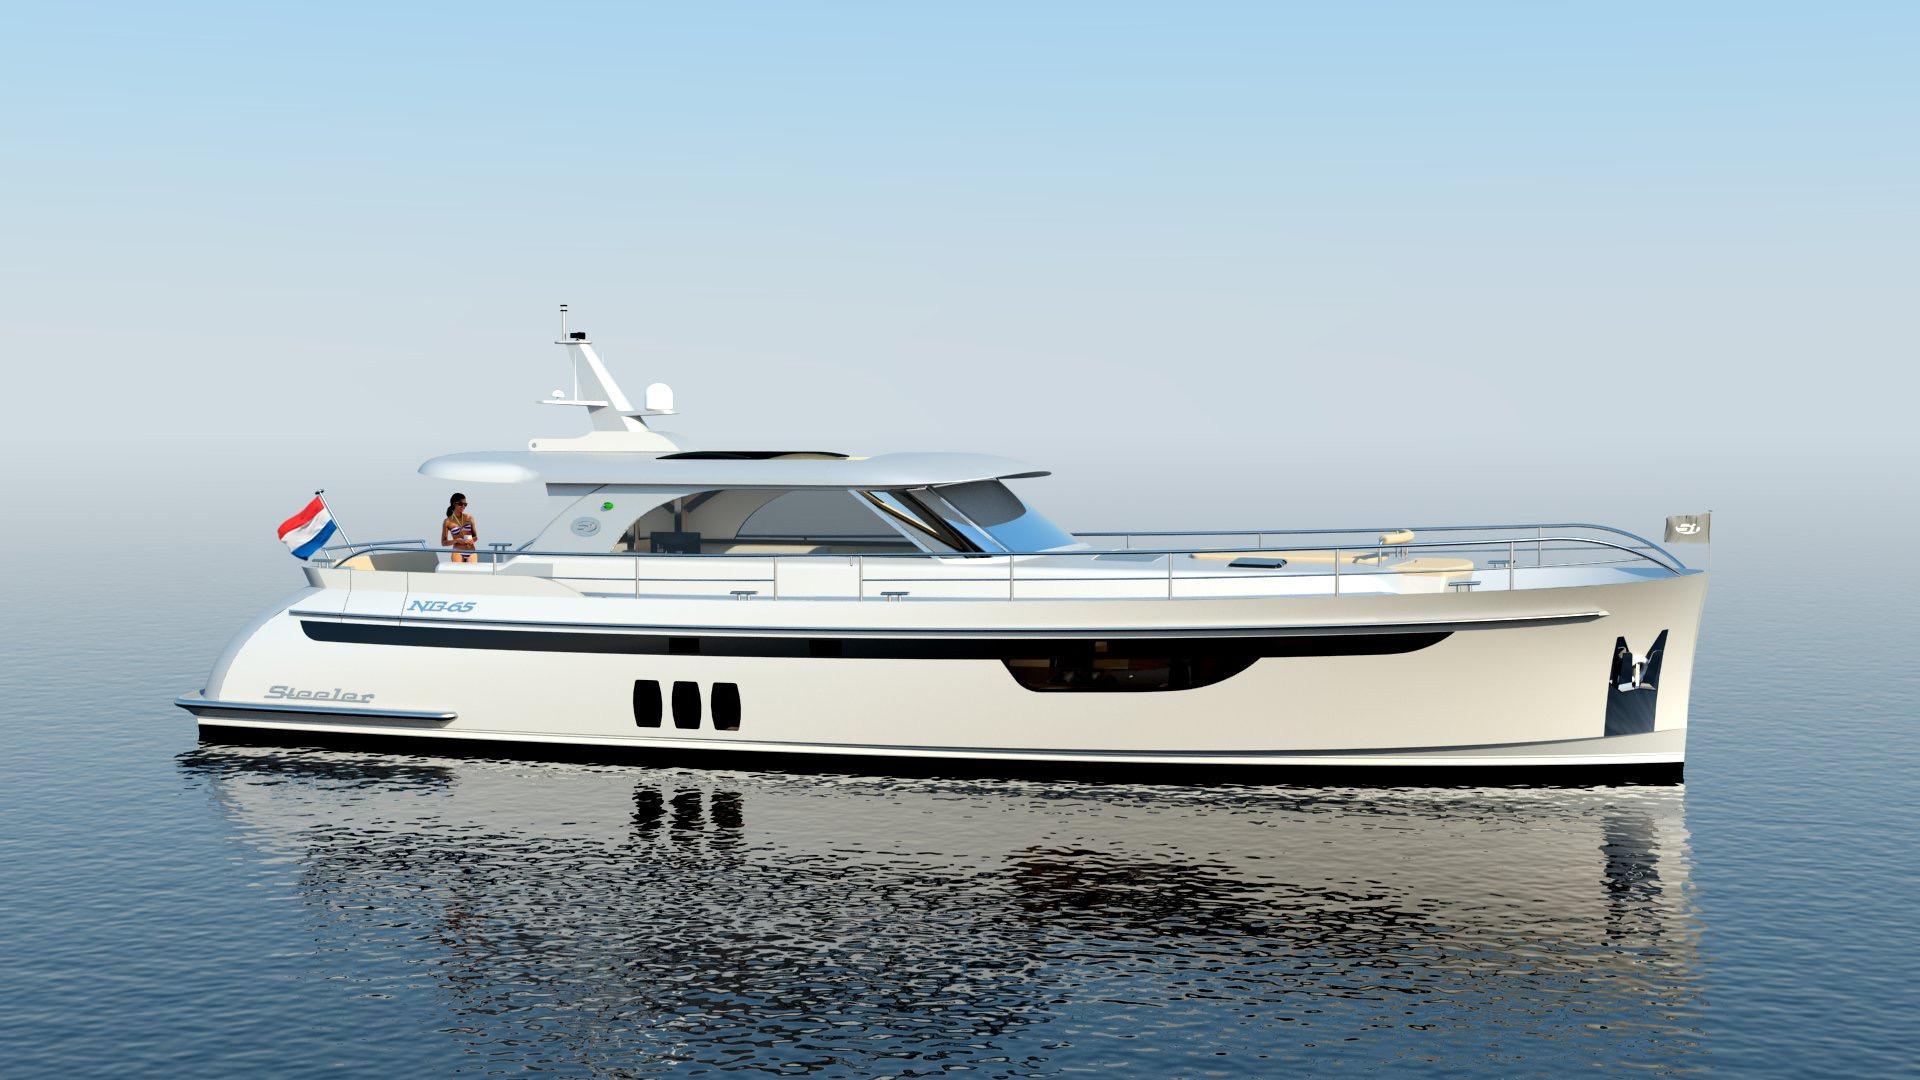 2020 Steeler NG 65 S Power Boat For Sale Wwwyachtworldcom